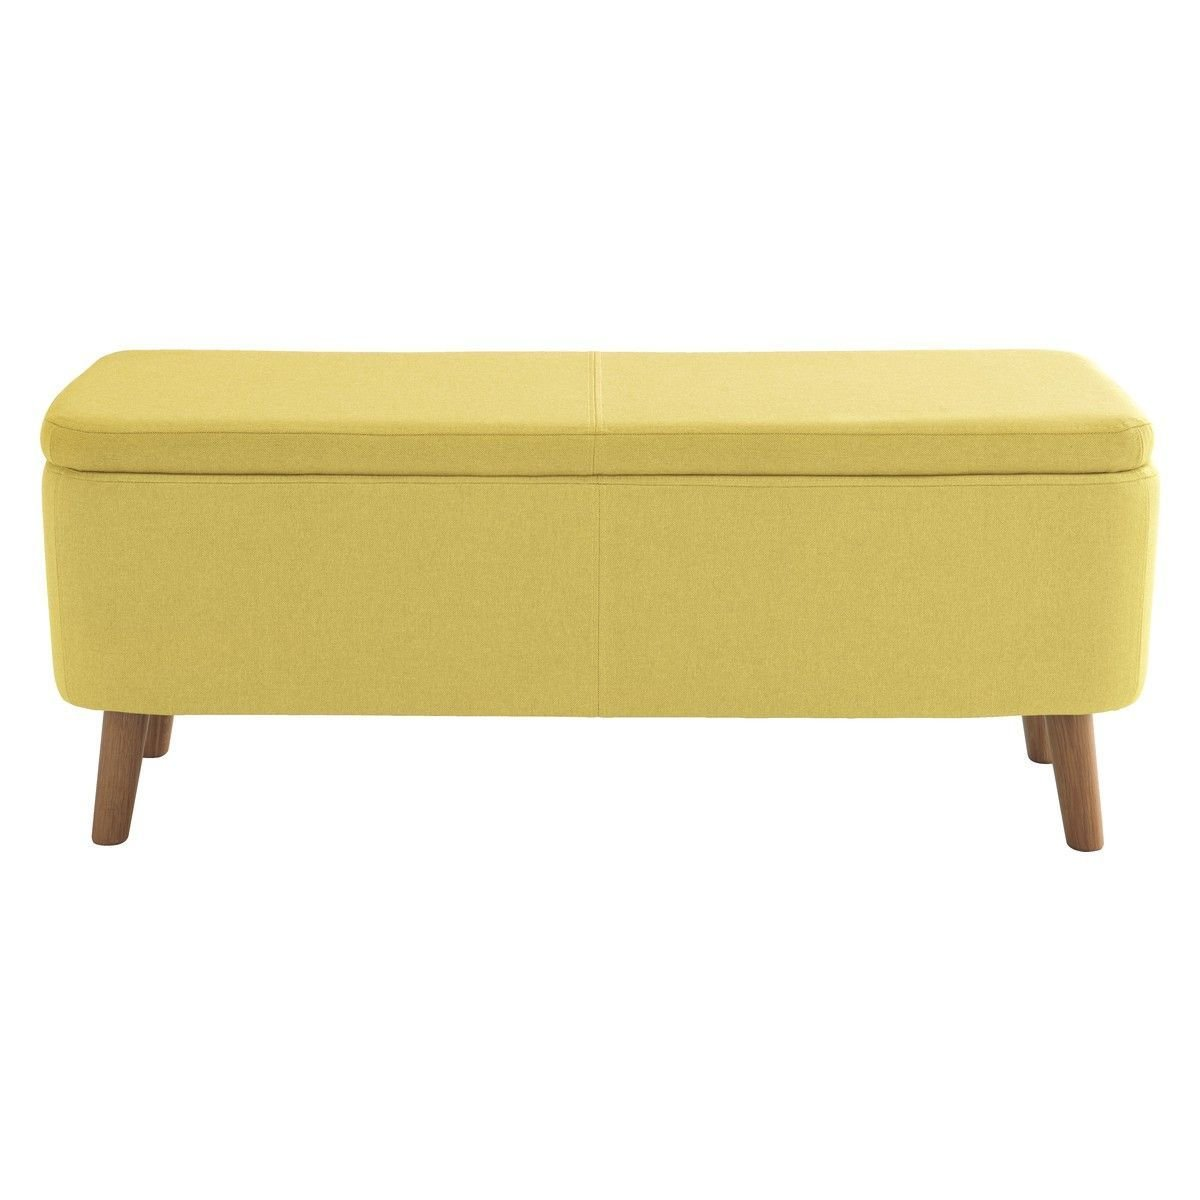 Best Jacobs Saffron Yellow Upholstered Storage Bench New With Pictures